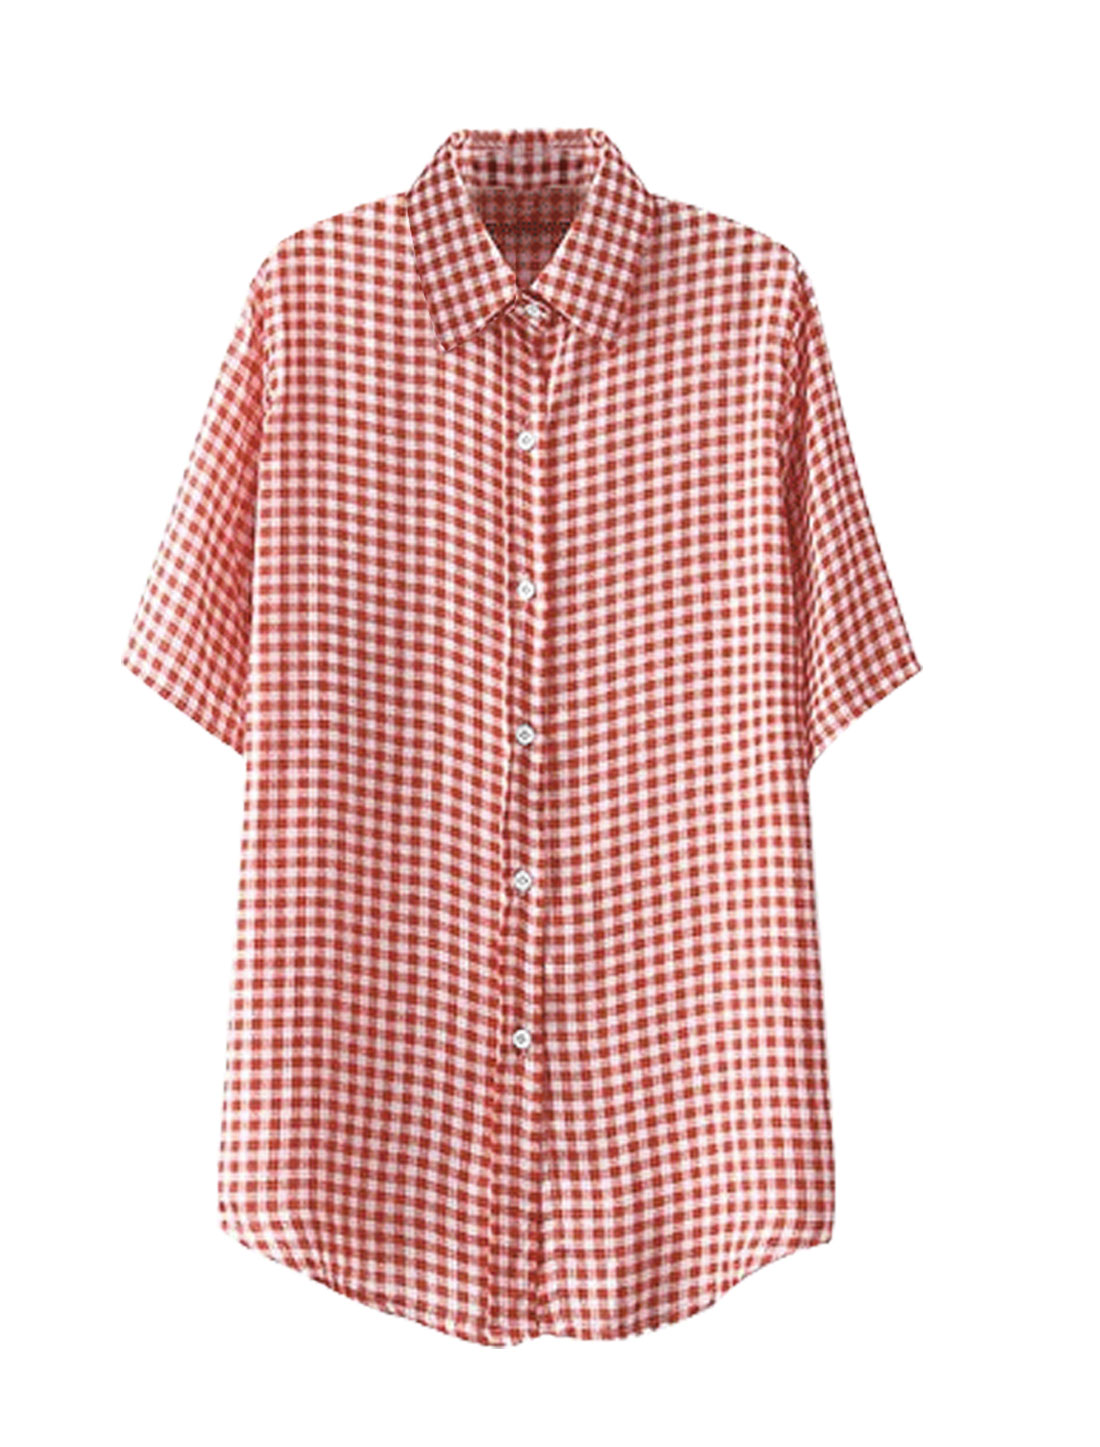 Lady Point Collar Button Closure Plaids Shirt Red S